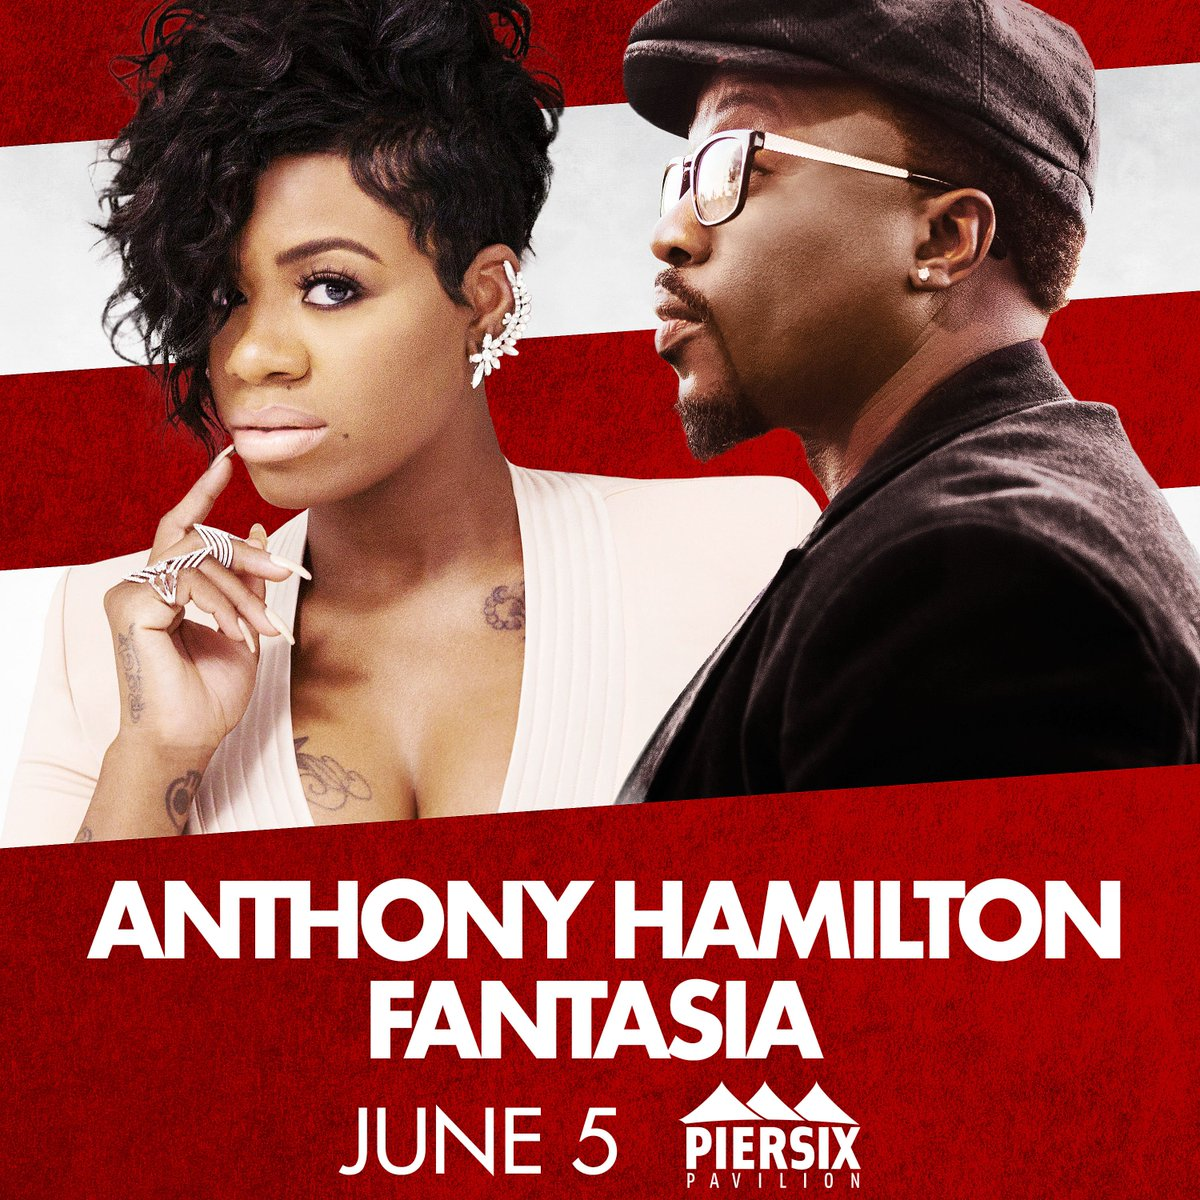 **JUST ANNOUNCED** 2nd show added @HamiltonAnthony & @TasiasWord June 5 - tix on sale this Friday 10 AM https://t.co/vRstrzZAvI